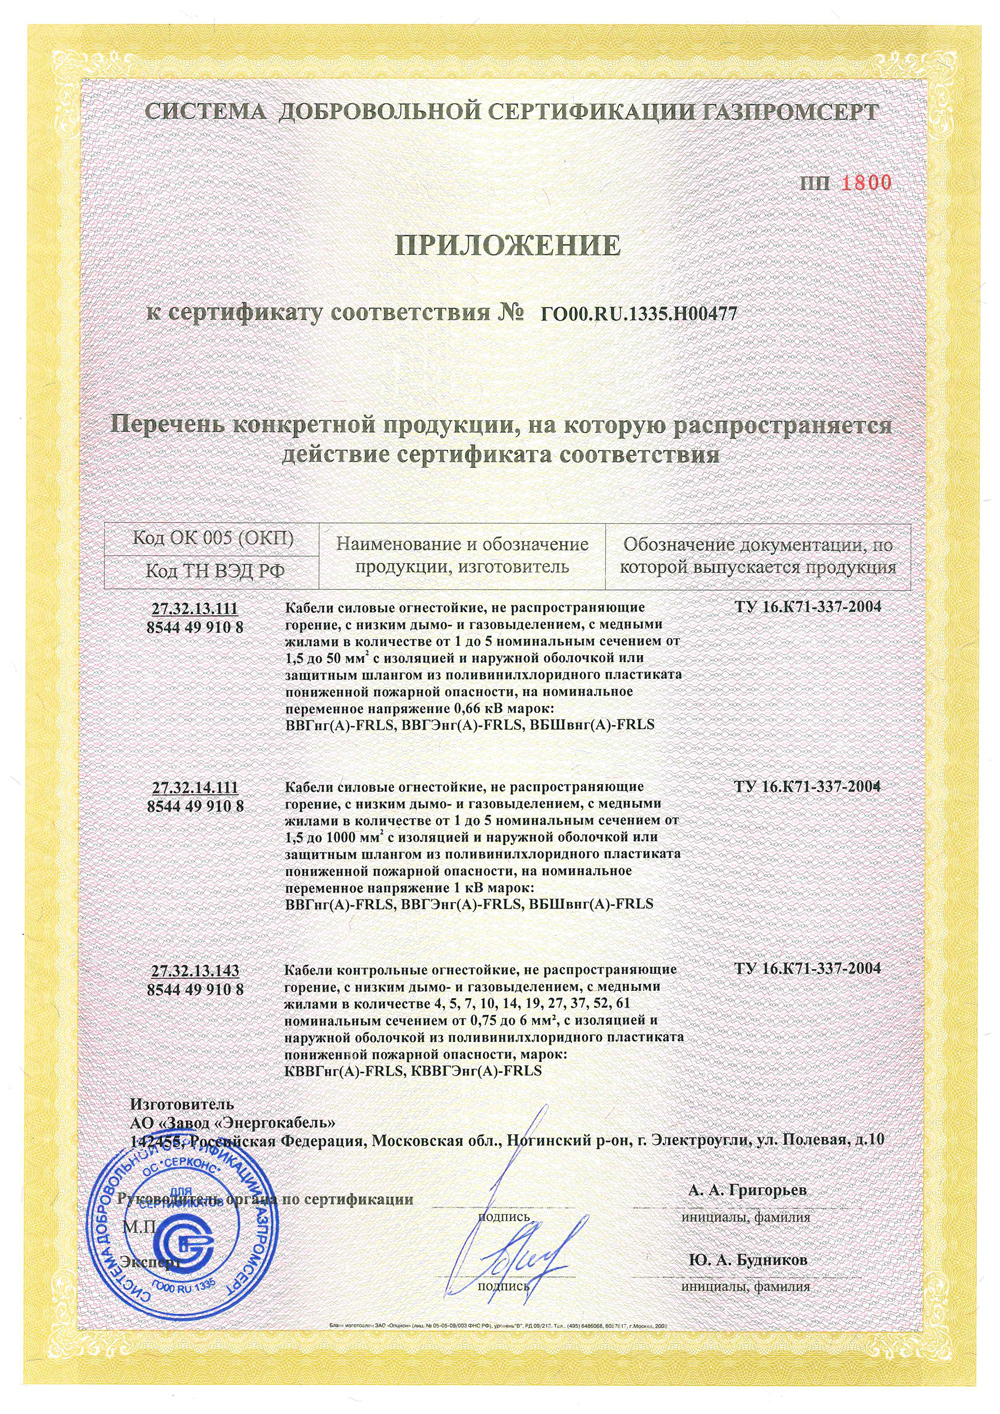 The appendix №1 to the Certificate of Conformity № ГО00.RU.1335.Н00477.